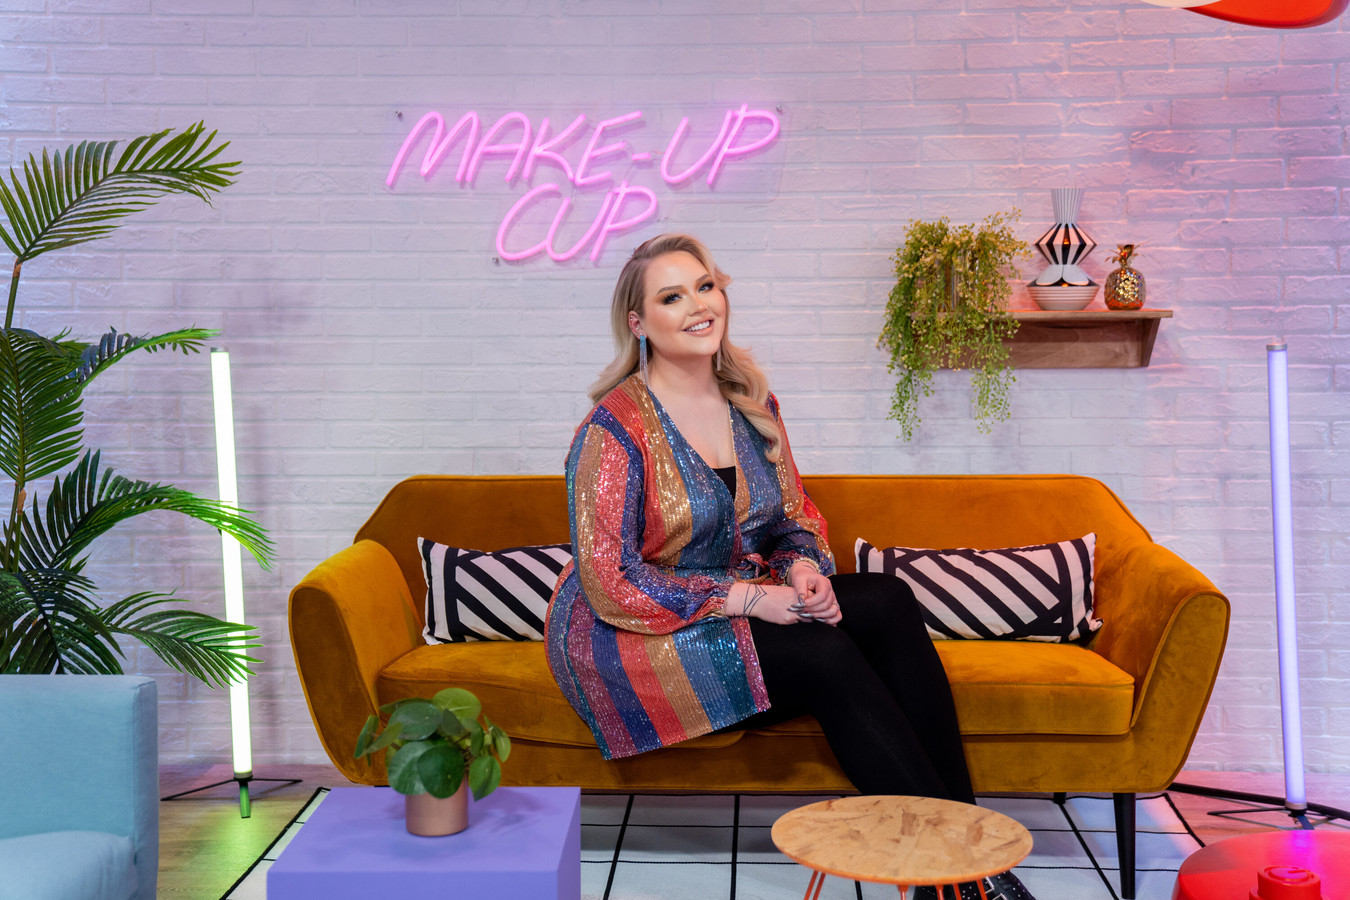 Nikkie de Jager presenteert de Make-up Cup